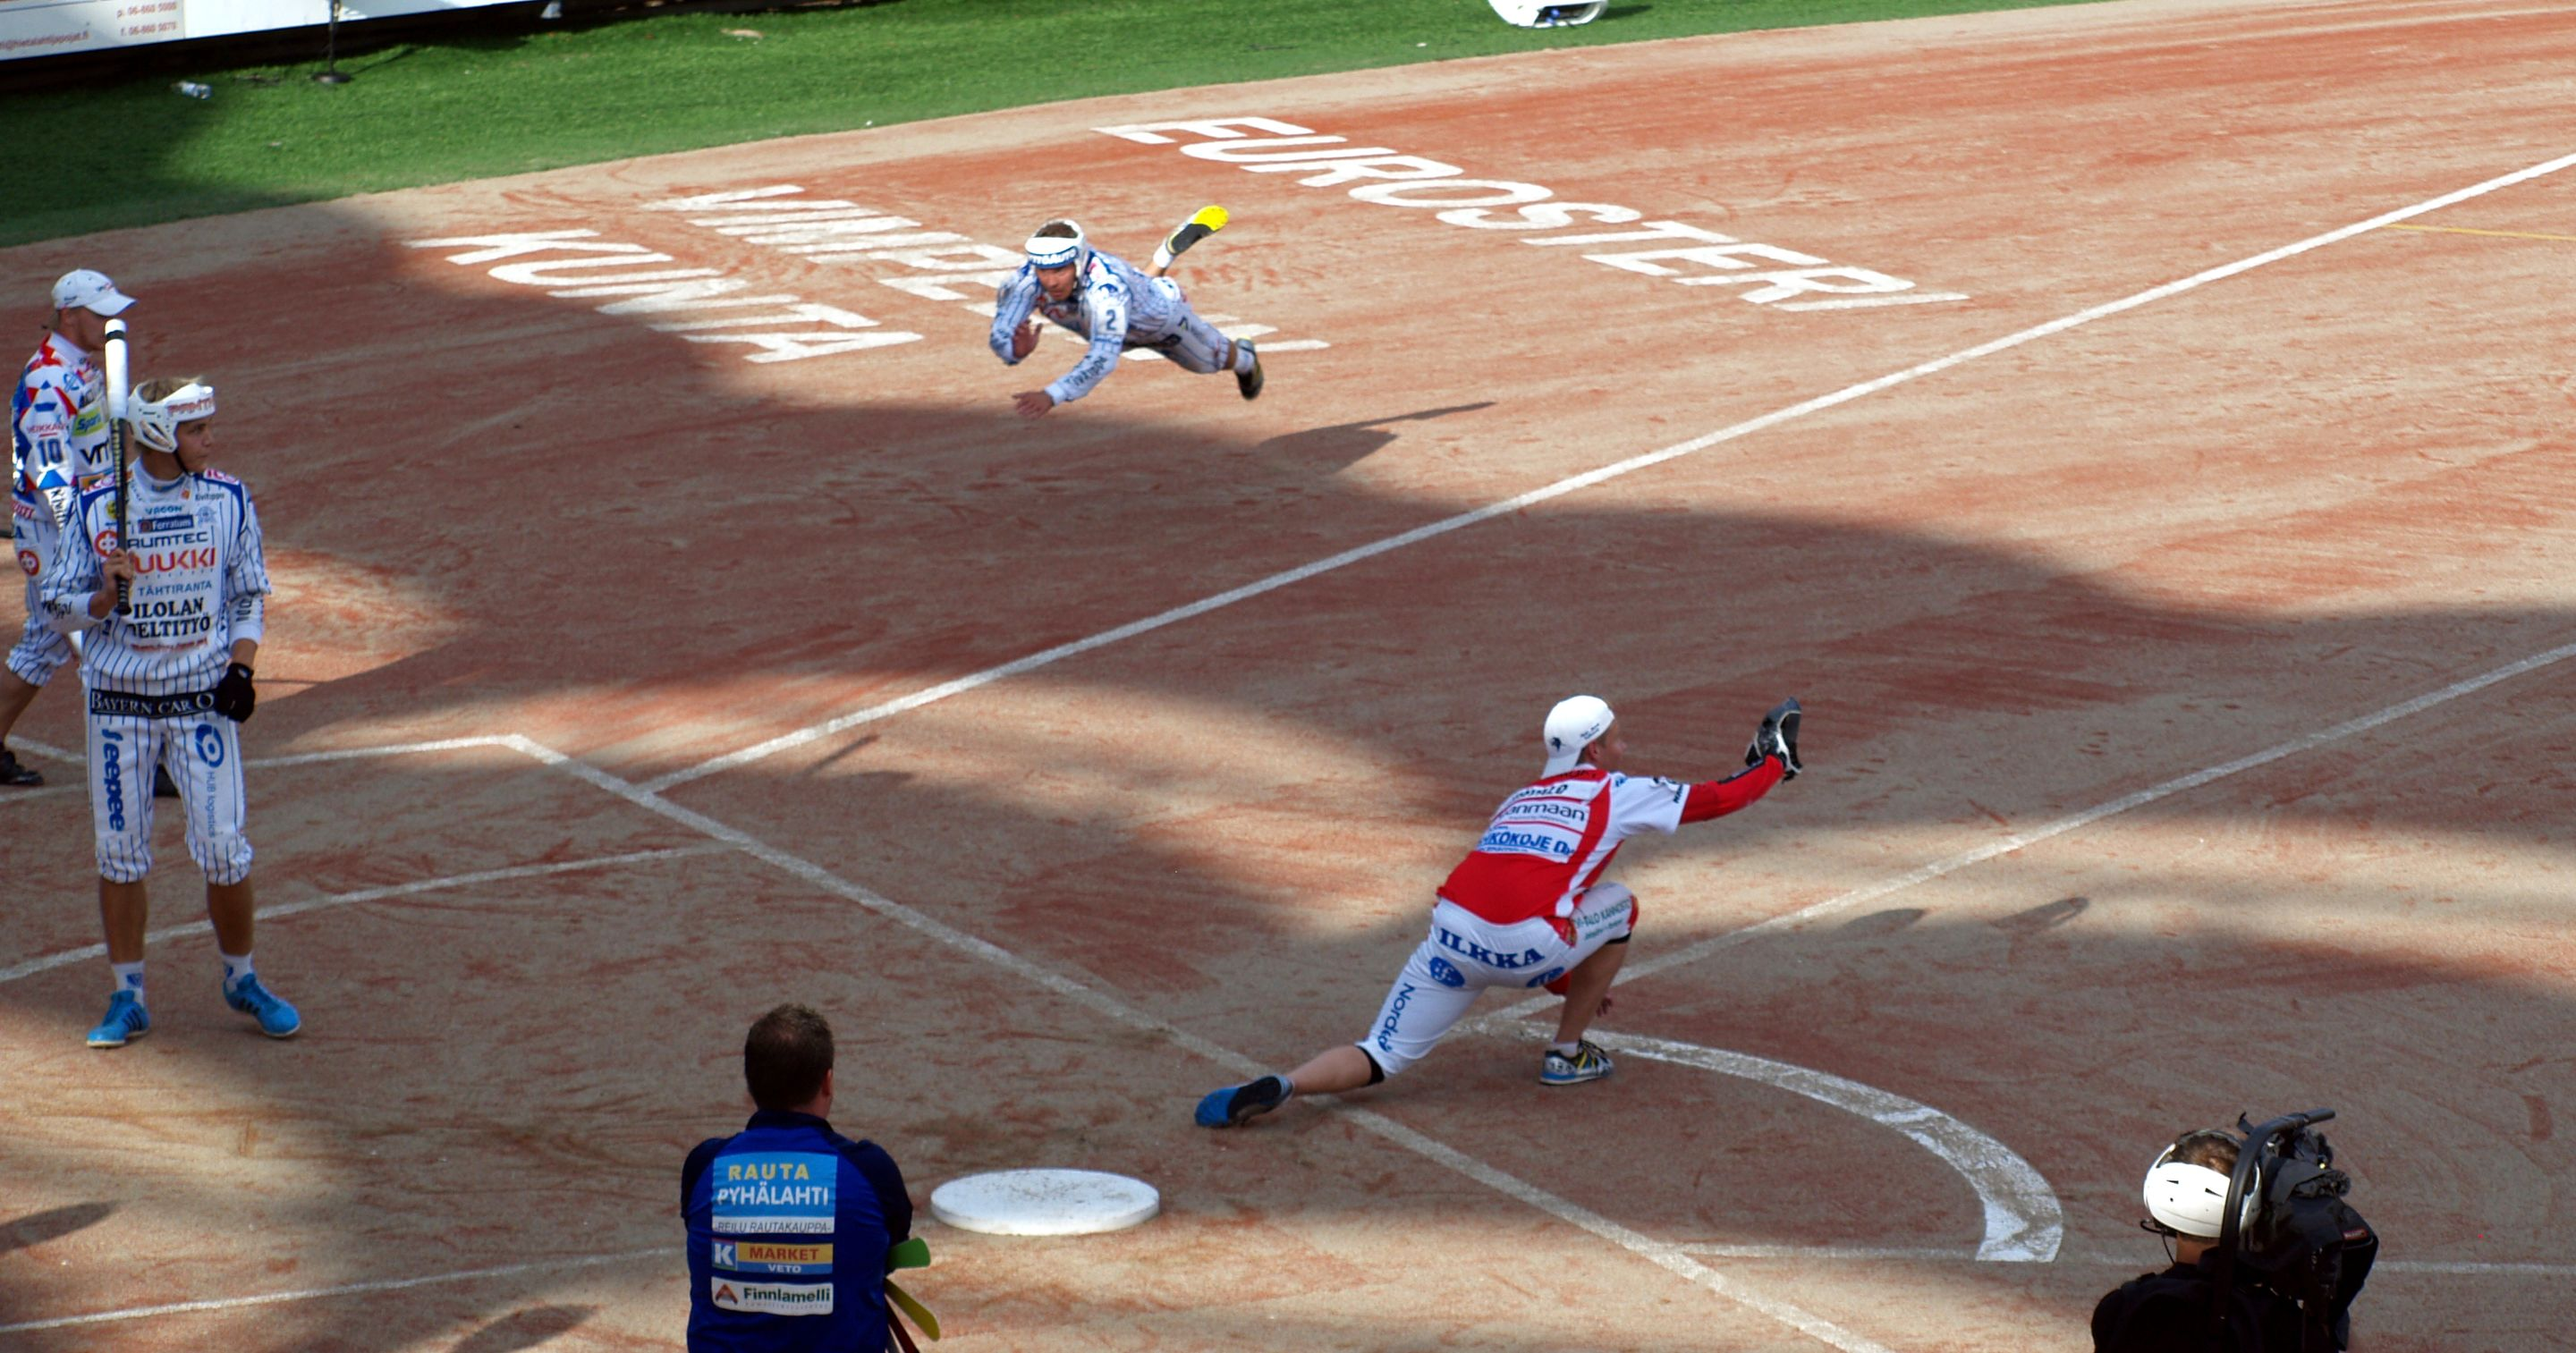 Pesäpallo: Finland's More Active Spin On Baseball!